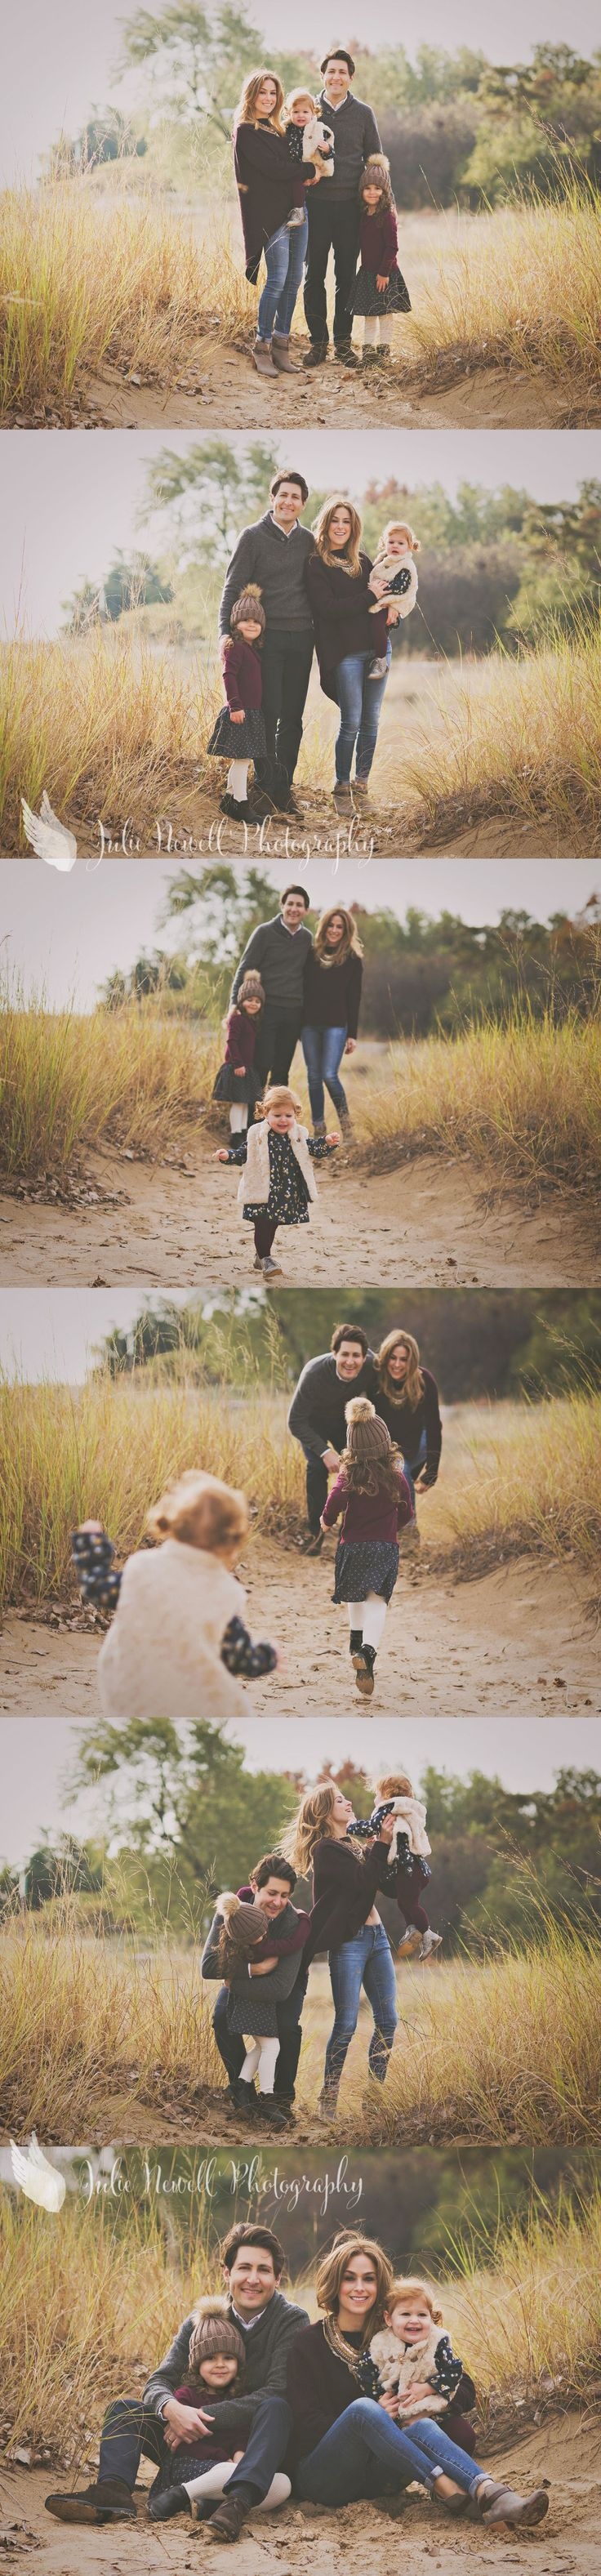 family photographer, family photography, chicago family photographer, chicago family photography, outdoor family photographer, outdoor family photography, best outdoor family photographer, best outdoor family photography, fall family portraits, fall family photographer, fall family photography